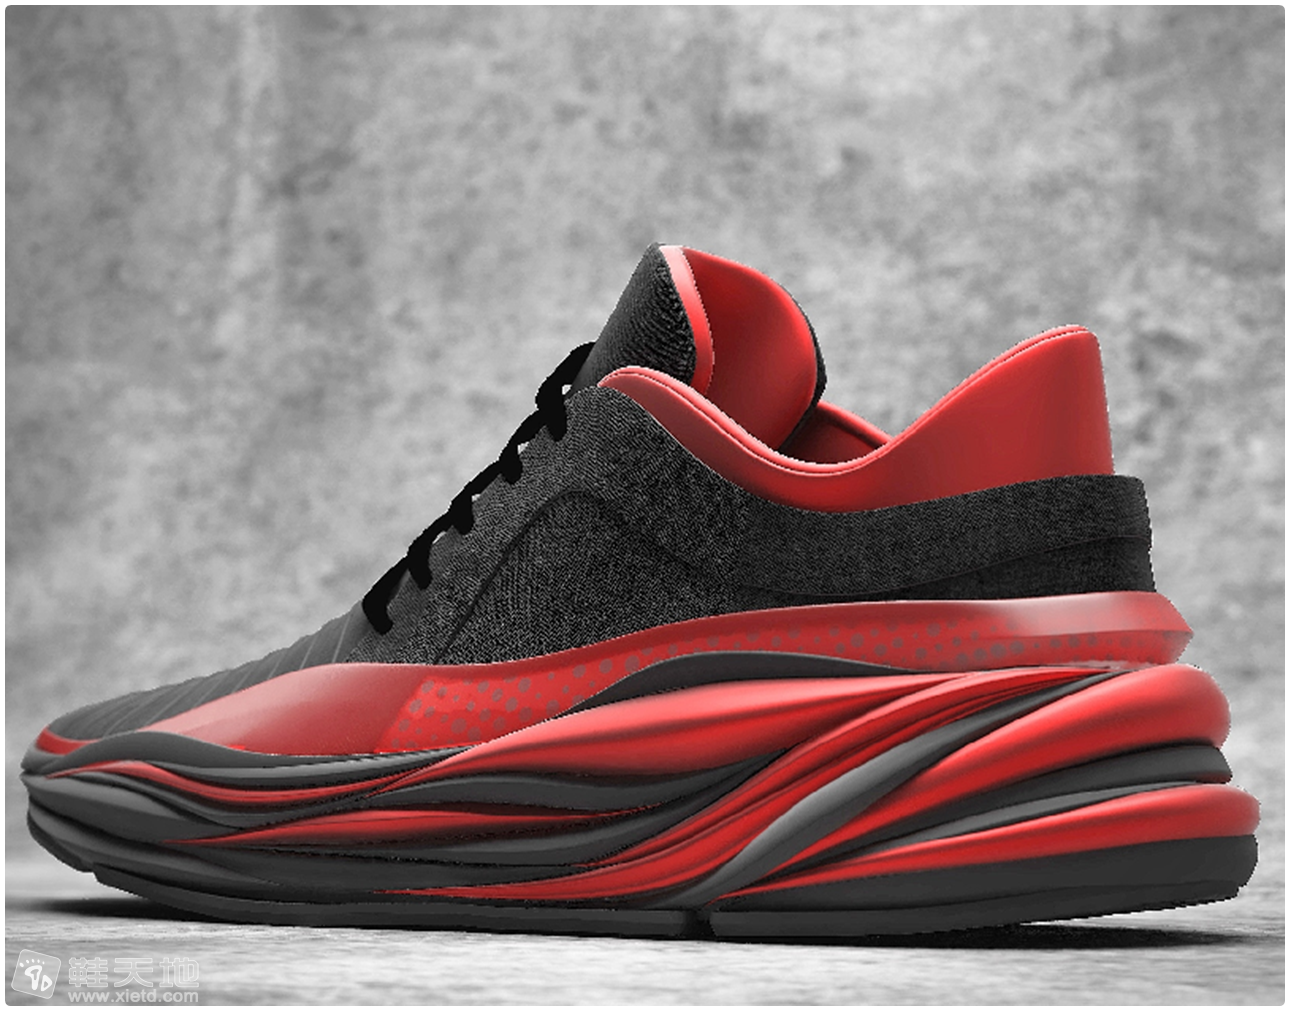 Sneaker concept (1).png